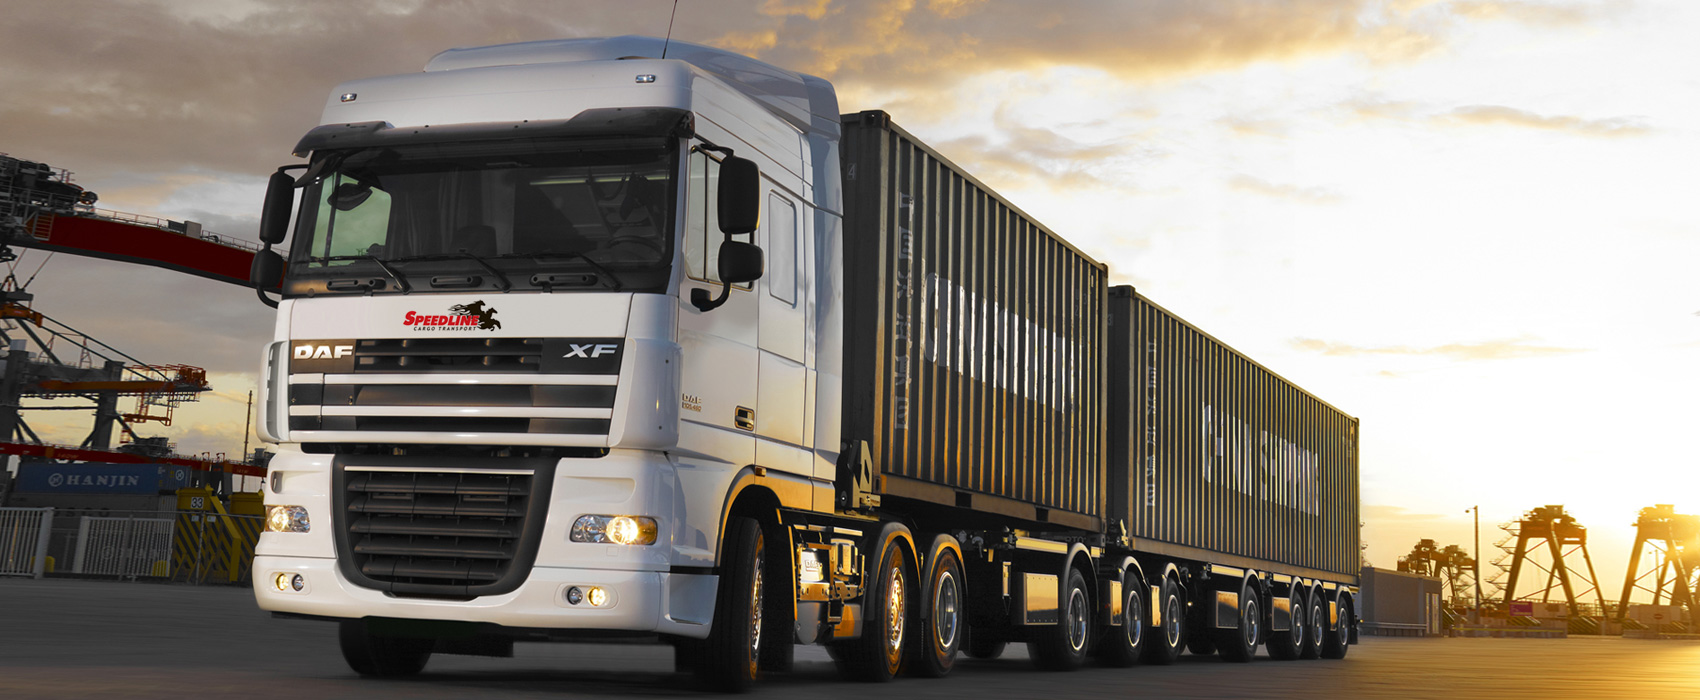 Speedline L L C | Freight Forwarding | Logistics